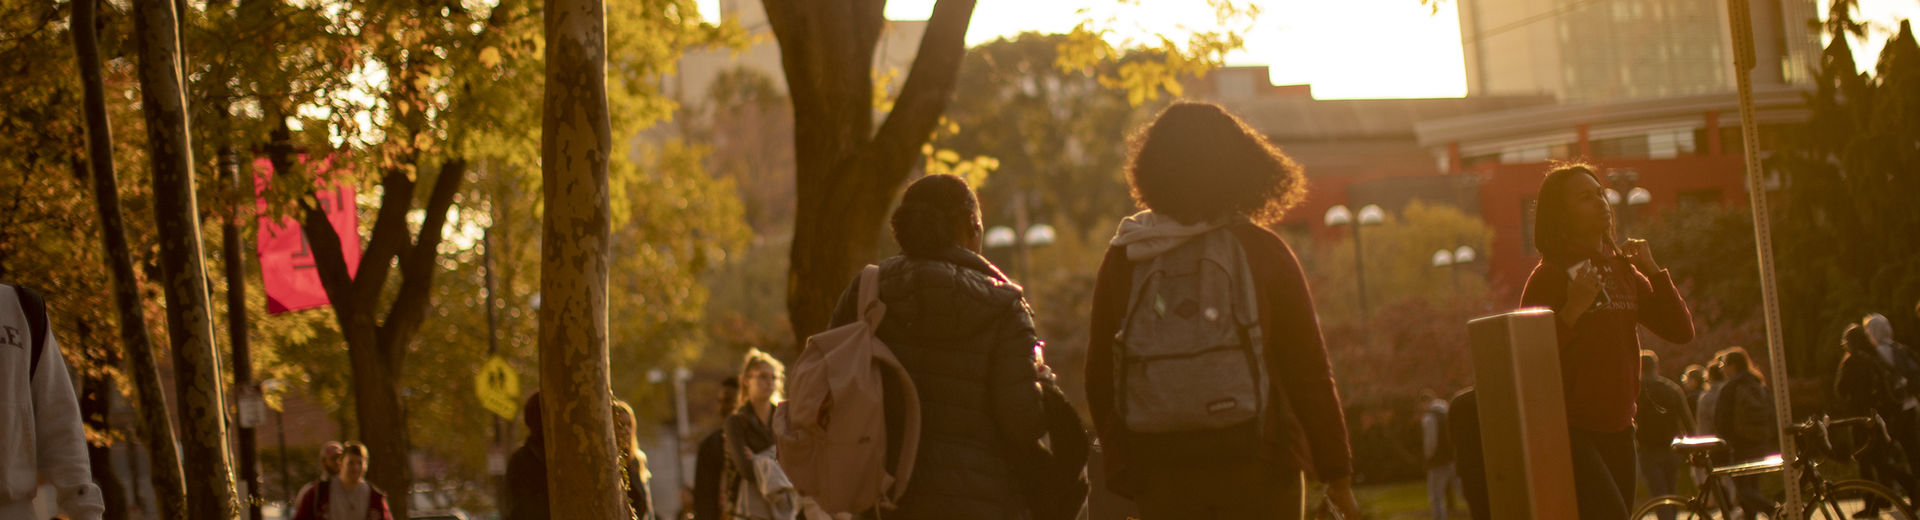 students walking across campus as the sun sets.